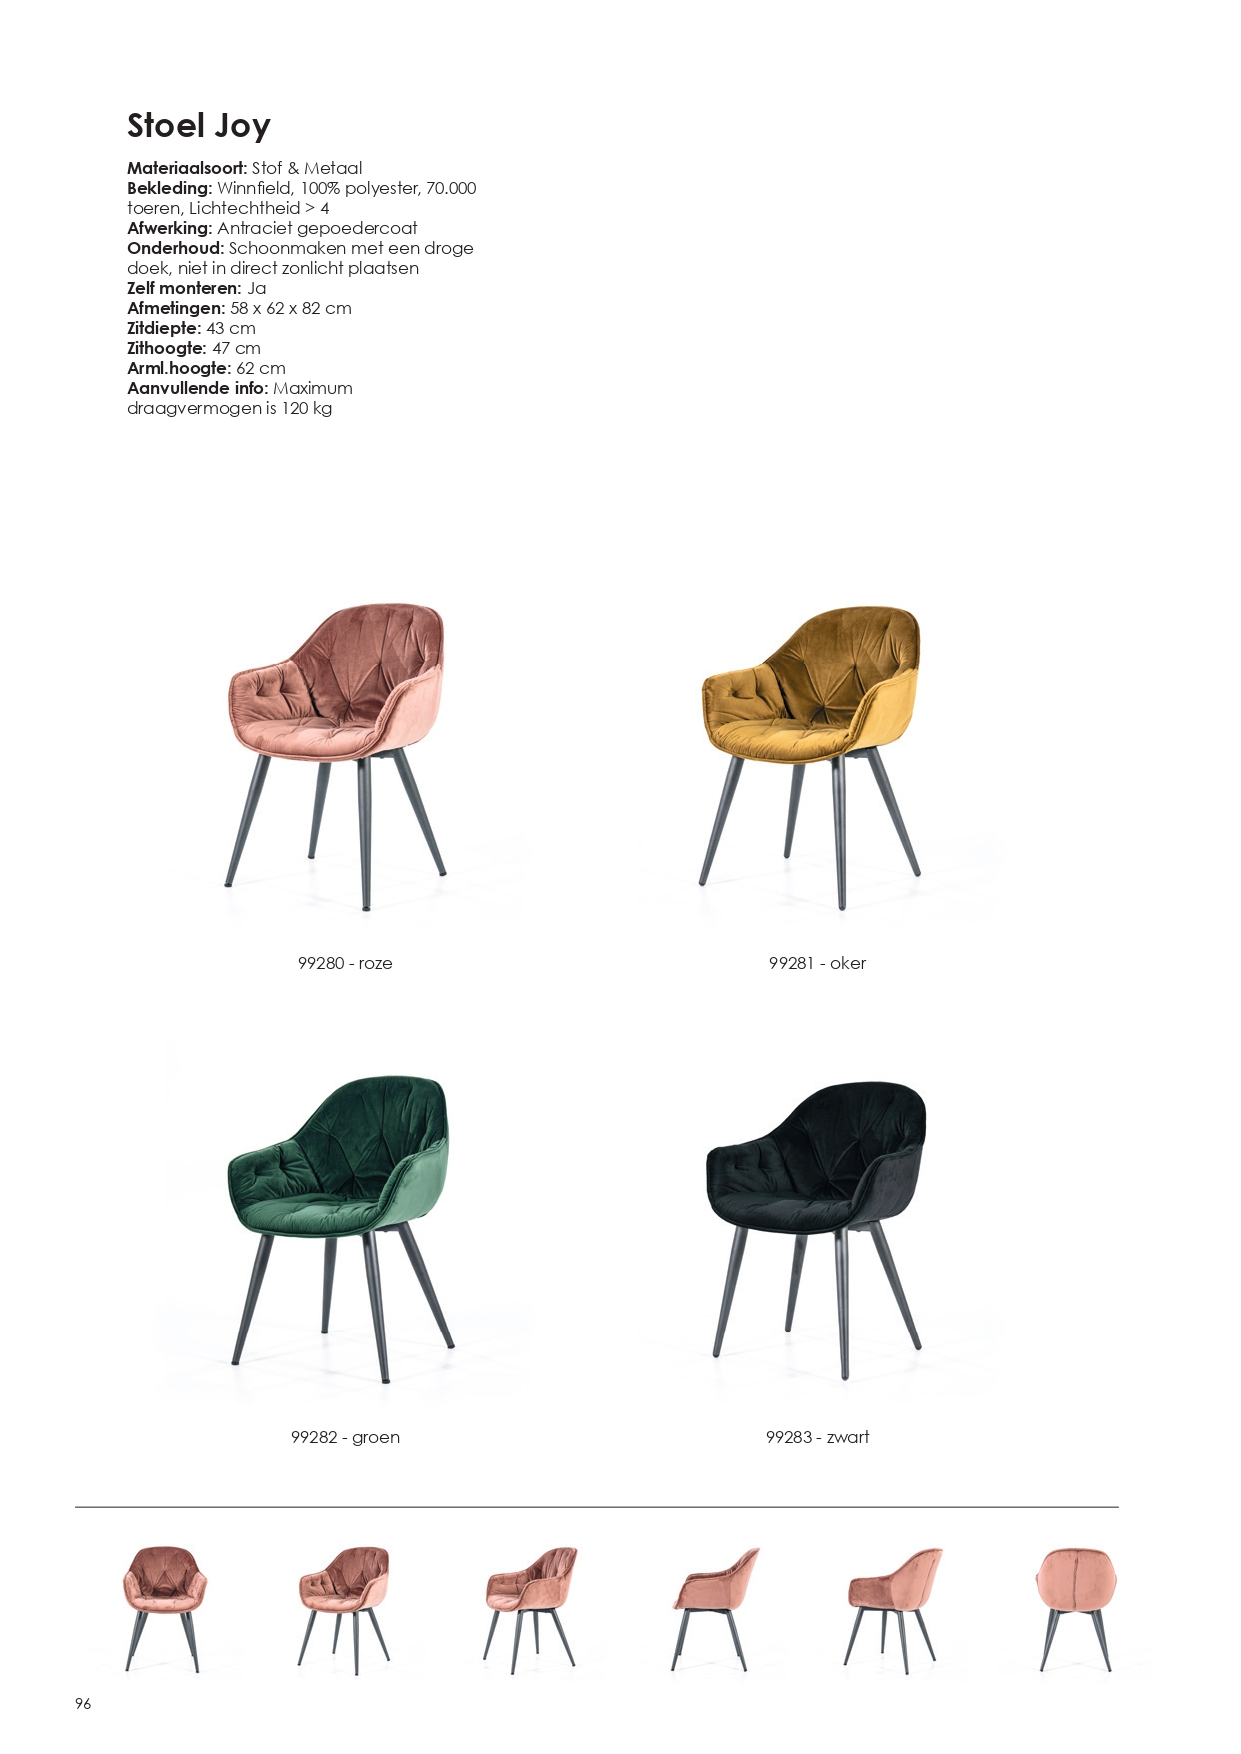 Catalogus SS21 NL_page-0096